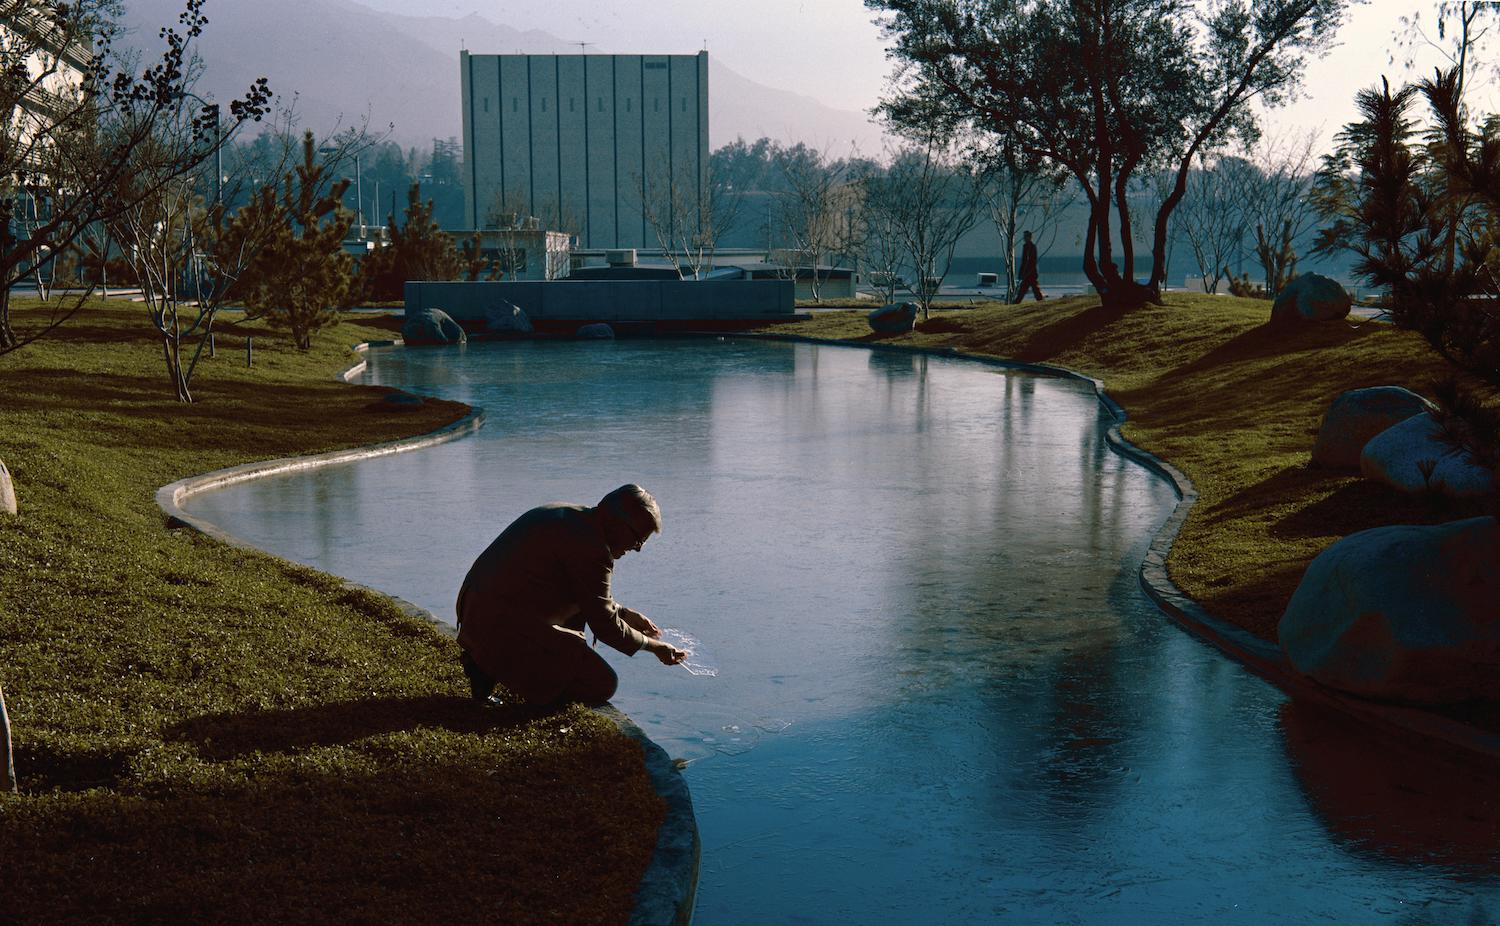 a winding human-made river cutting through grassy hills. in the background is a square white building and in the foreground, shadowed, is a person crouching down near the water